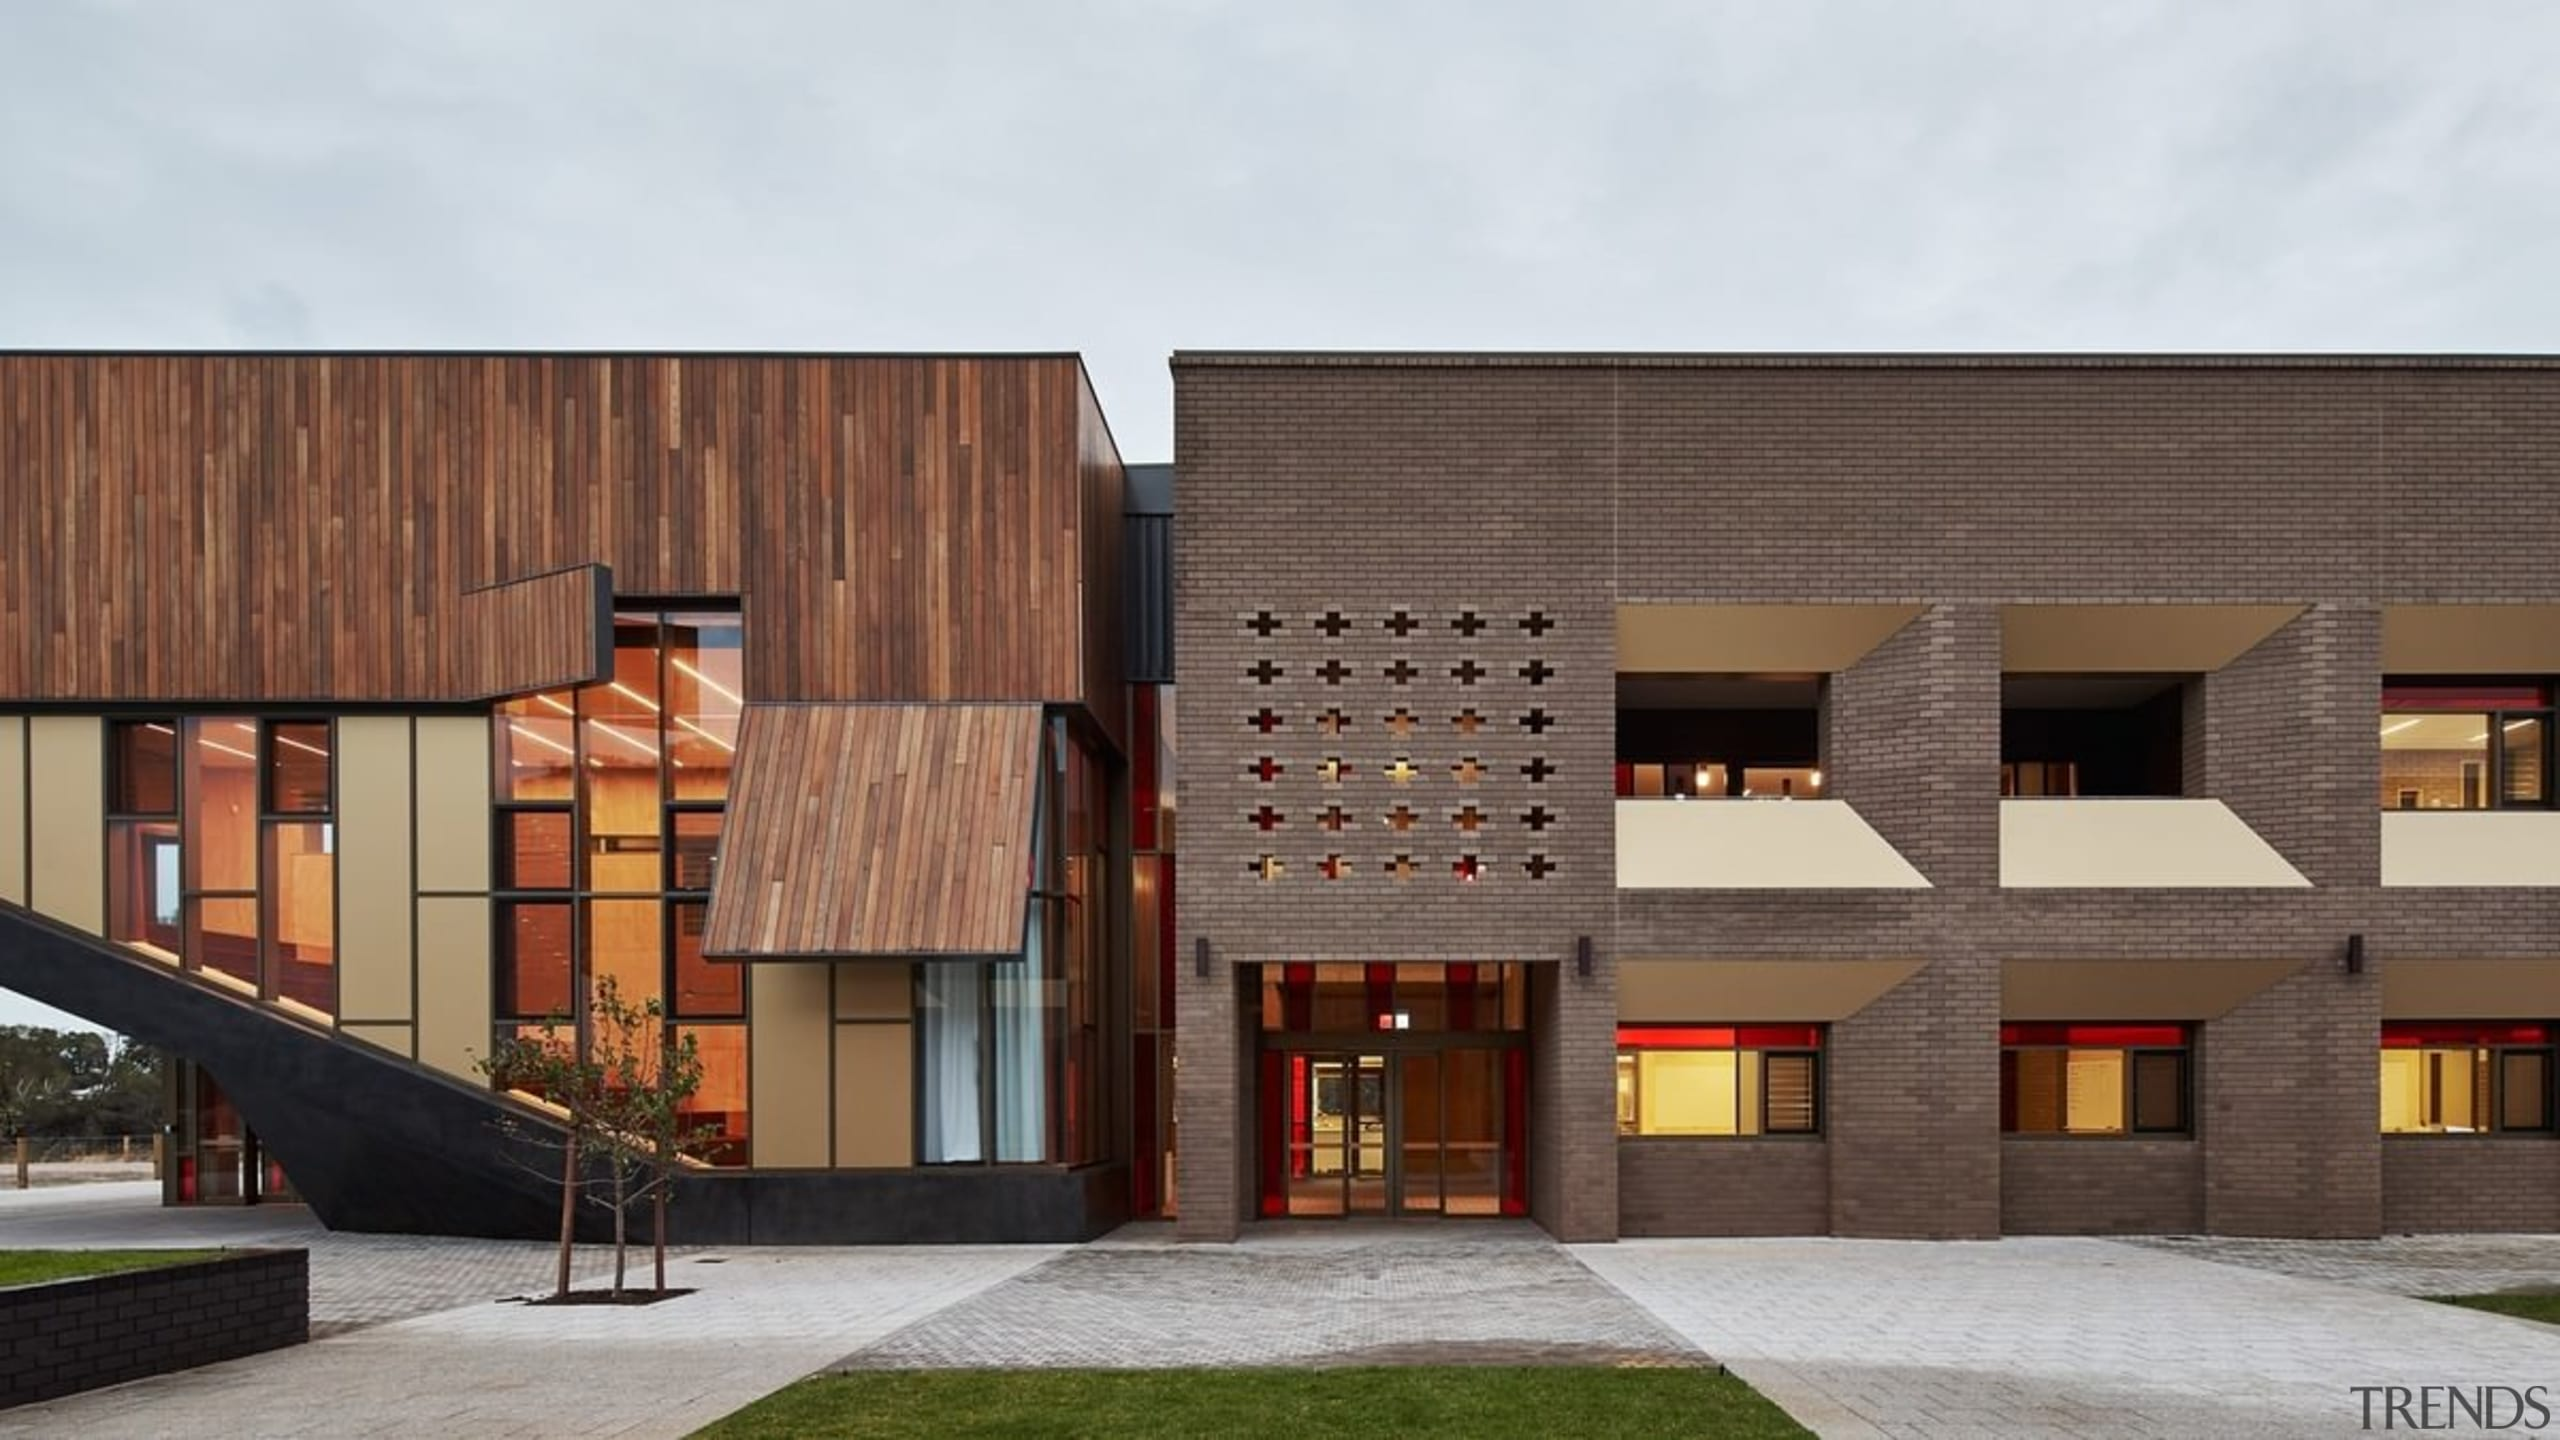 Bunbury Catholic College – Mercy Campus - Bunbury architecture, building, commercial building, elevation, facade, home, house, mixed use, real estate, residential area, white, brown